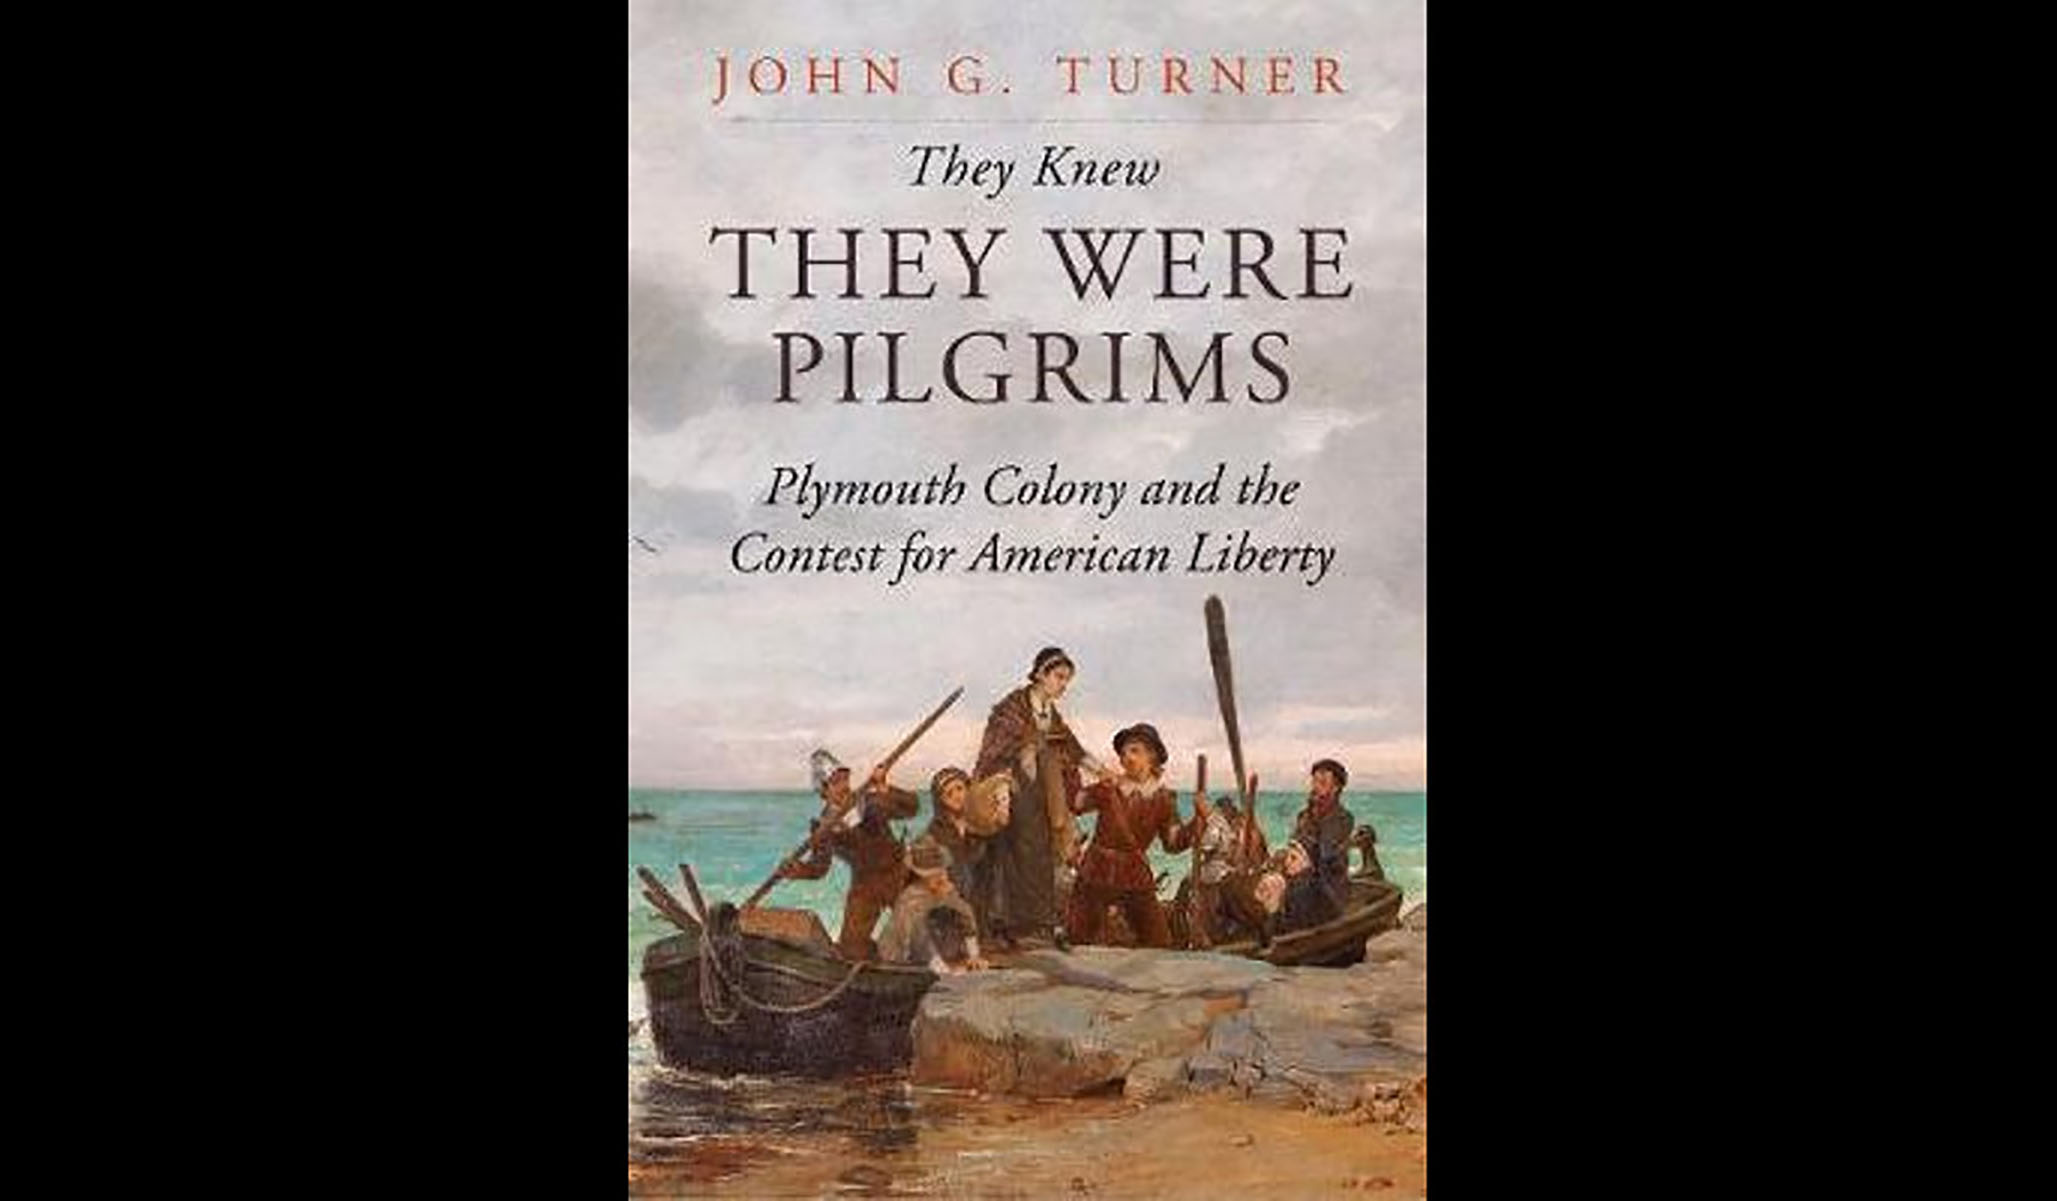 They knew they were Pilgrims: Plymouth Colony and the Contest for American Liberty by John G. Turner, Yale, $30